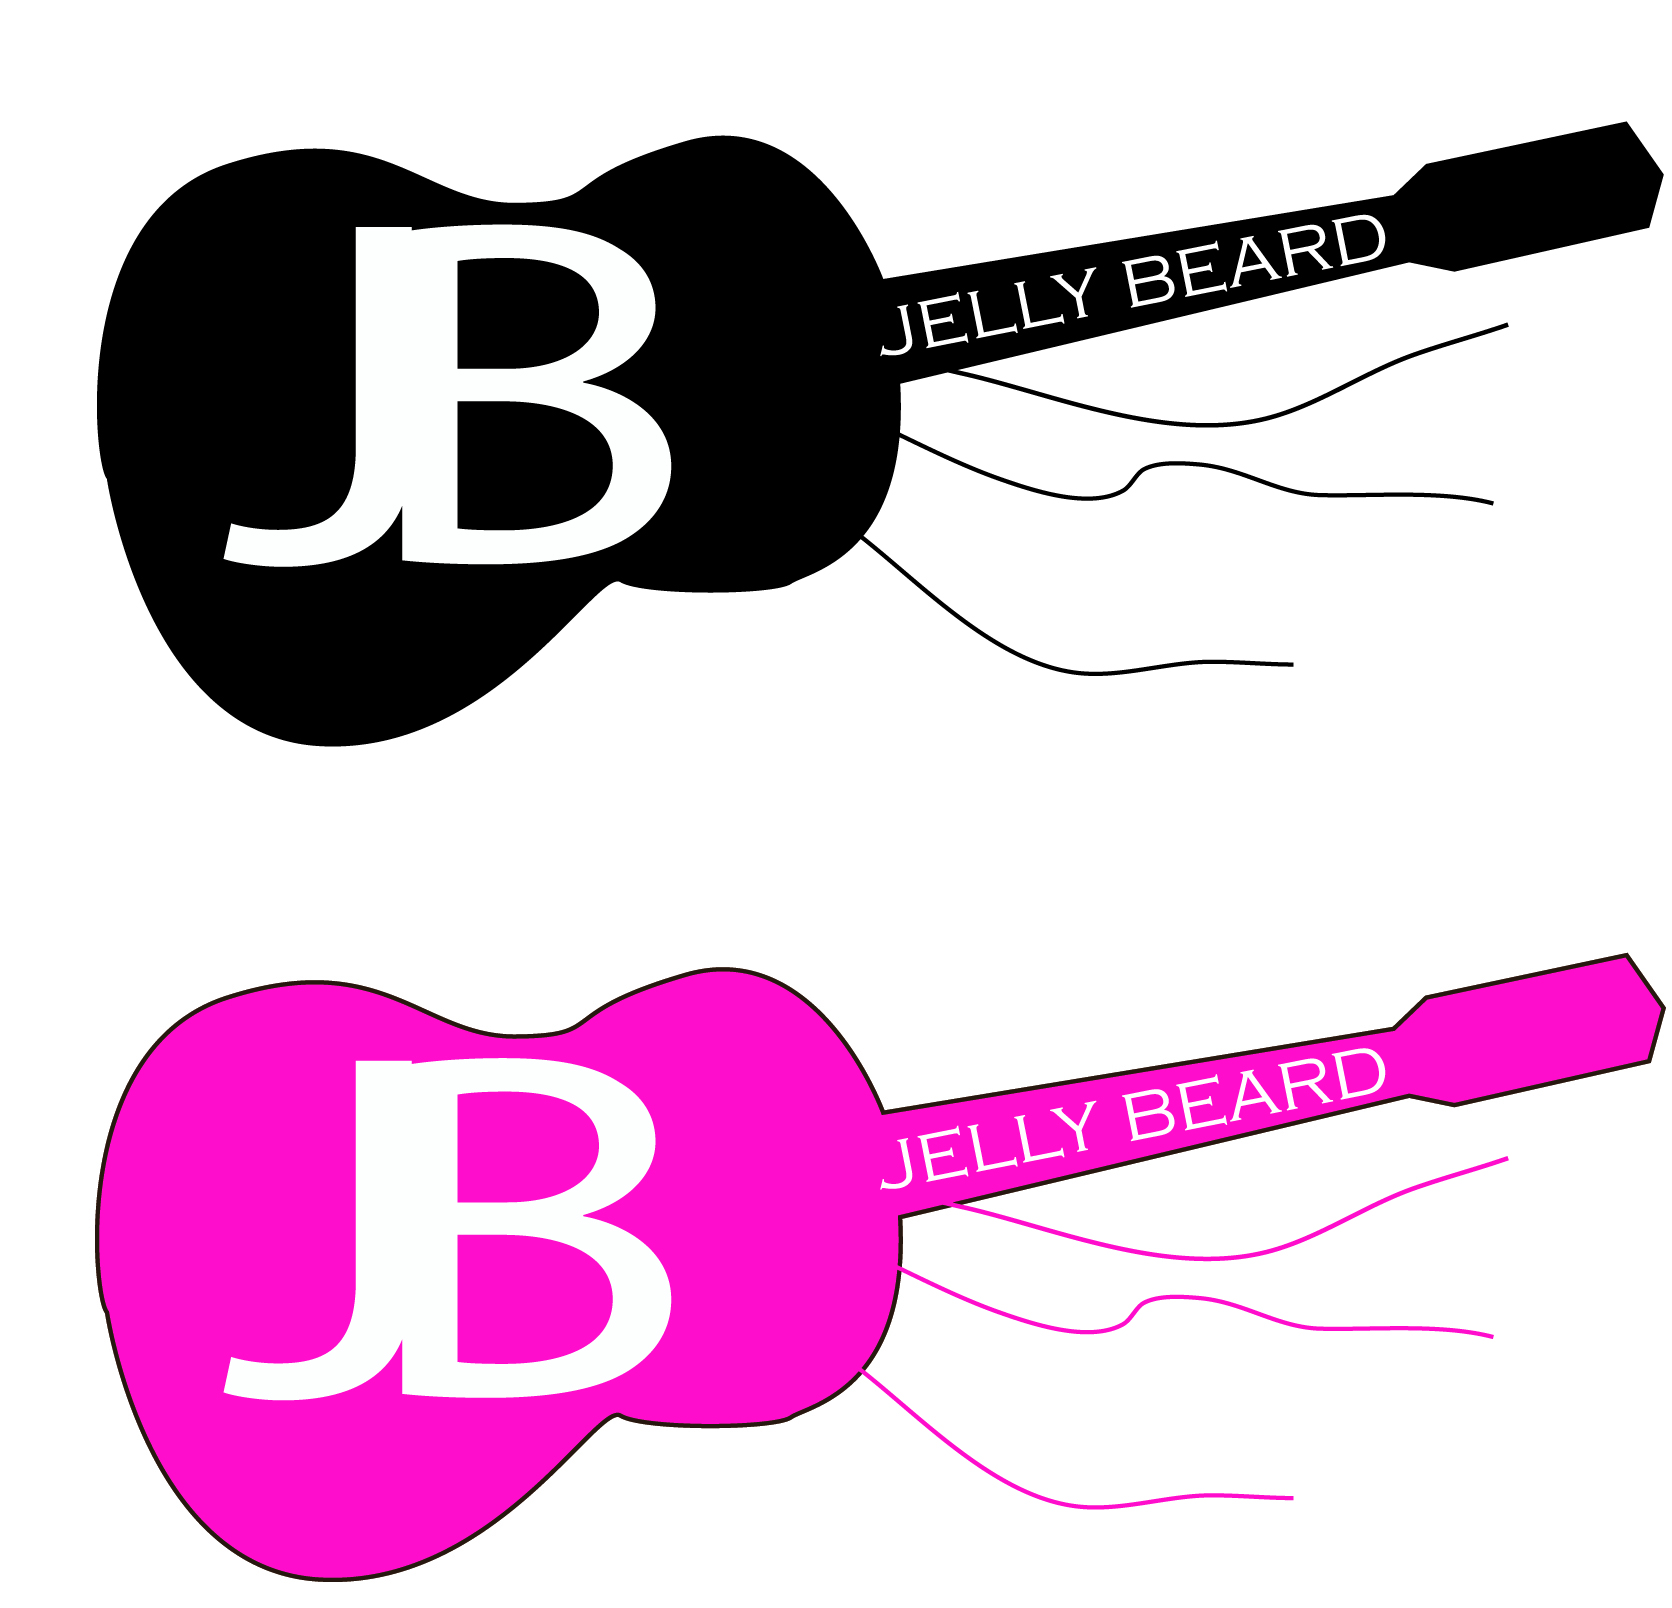 Logo Design by V Anil Yadavv - Entry No. 54 in the Logo Design Contest jellybeard Logo Design.